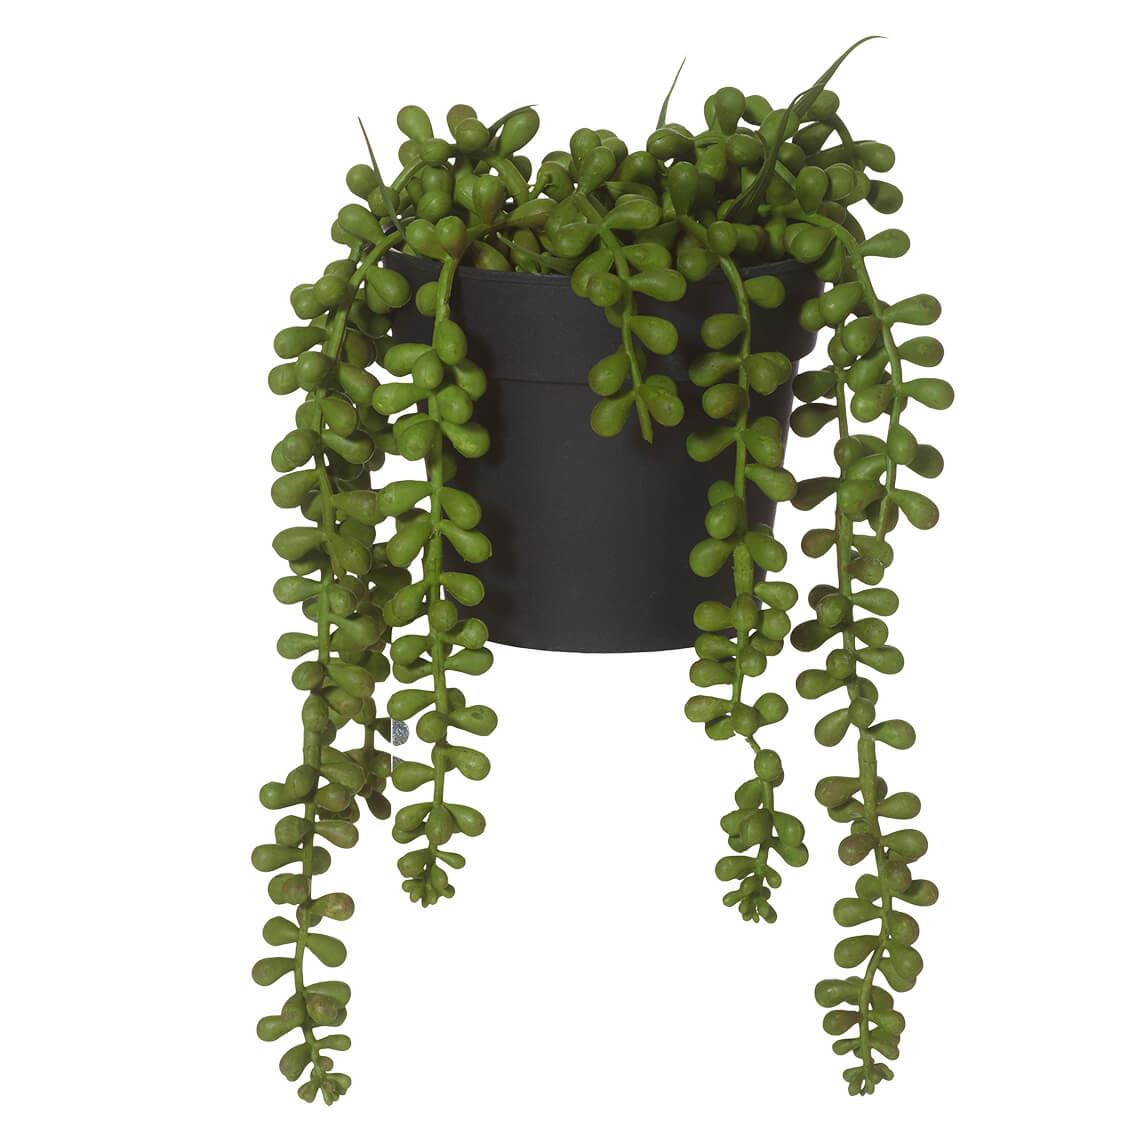 String Of Pearls Size W 14cm x D 14cm x H 23cm in Green Plastic/Fabric/Wire Freedom by Freedom, a Plants for sale on Style Sourcebook